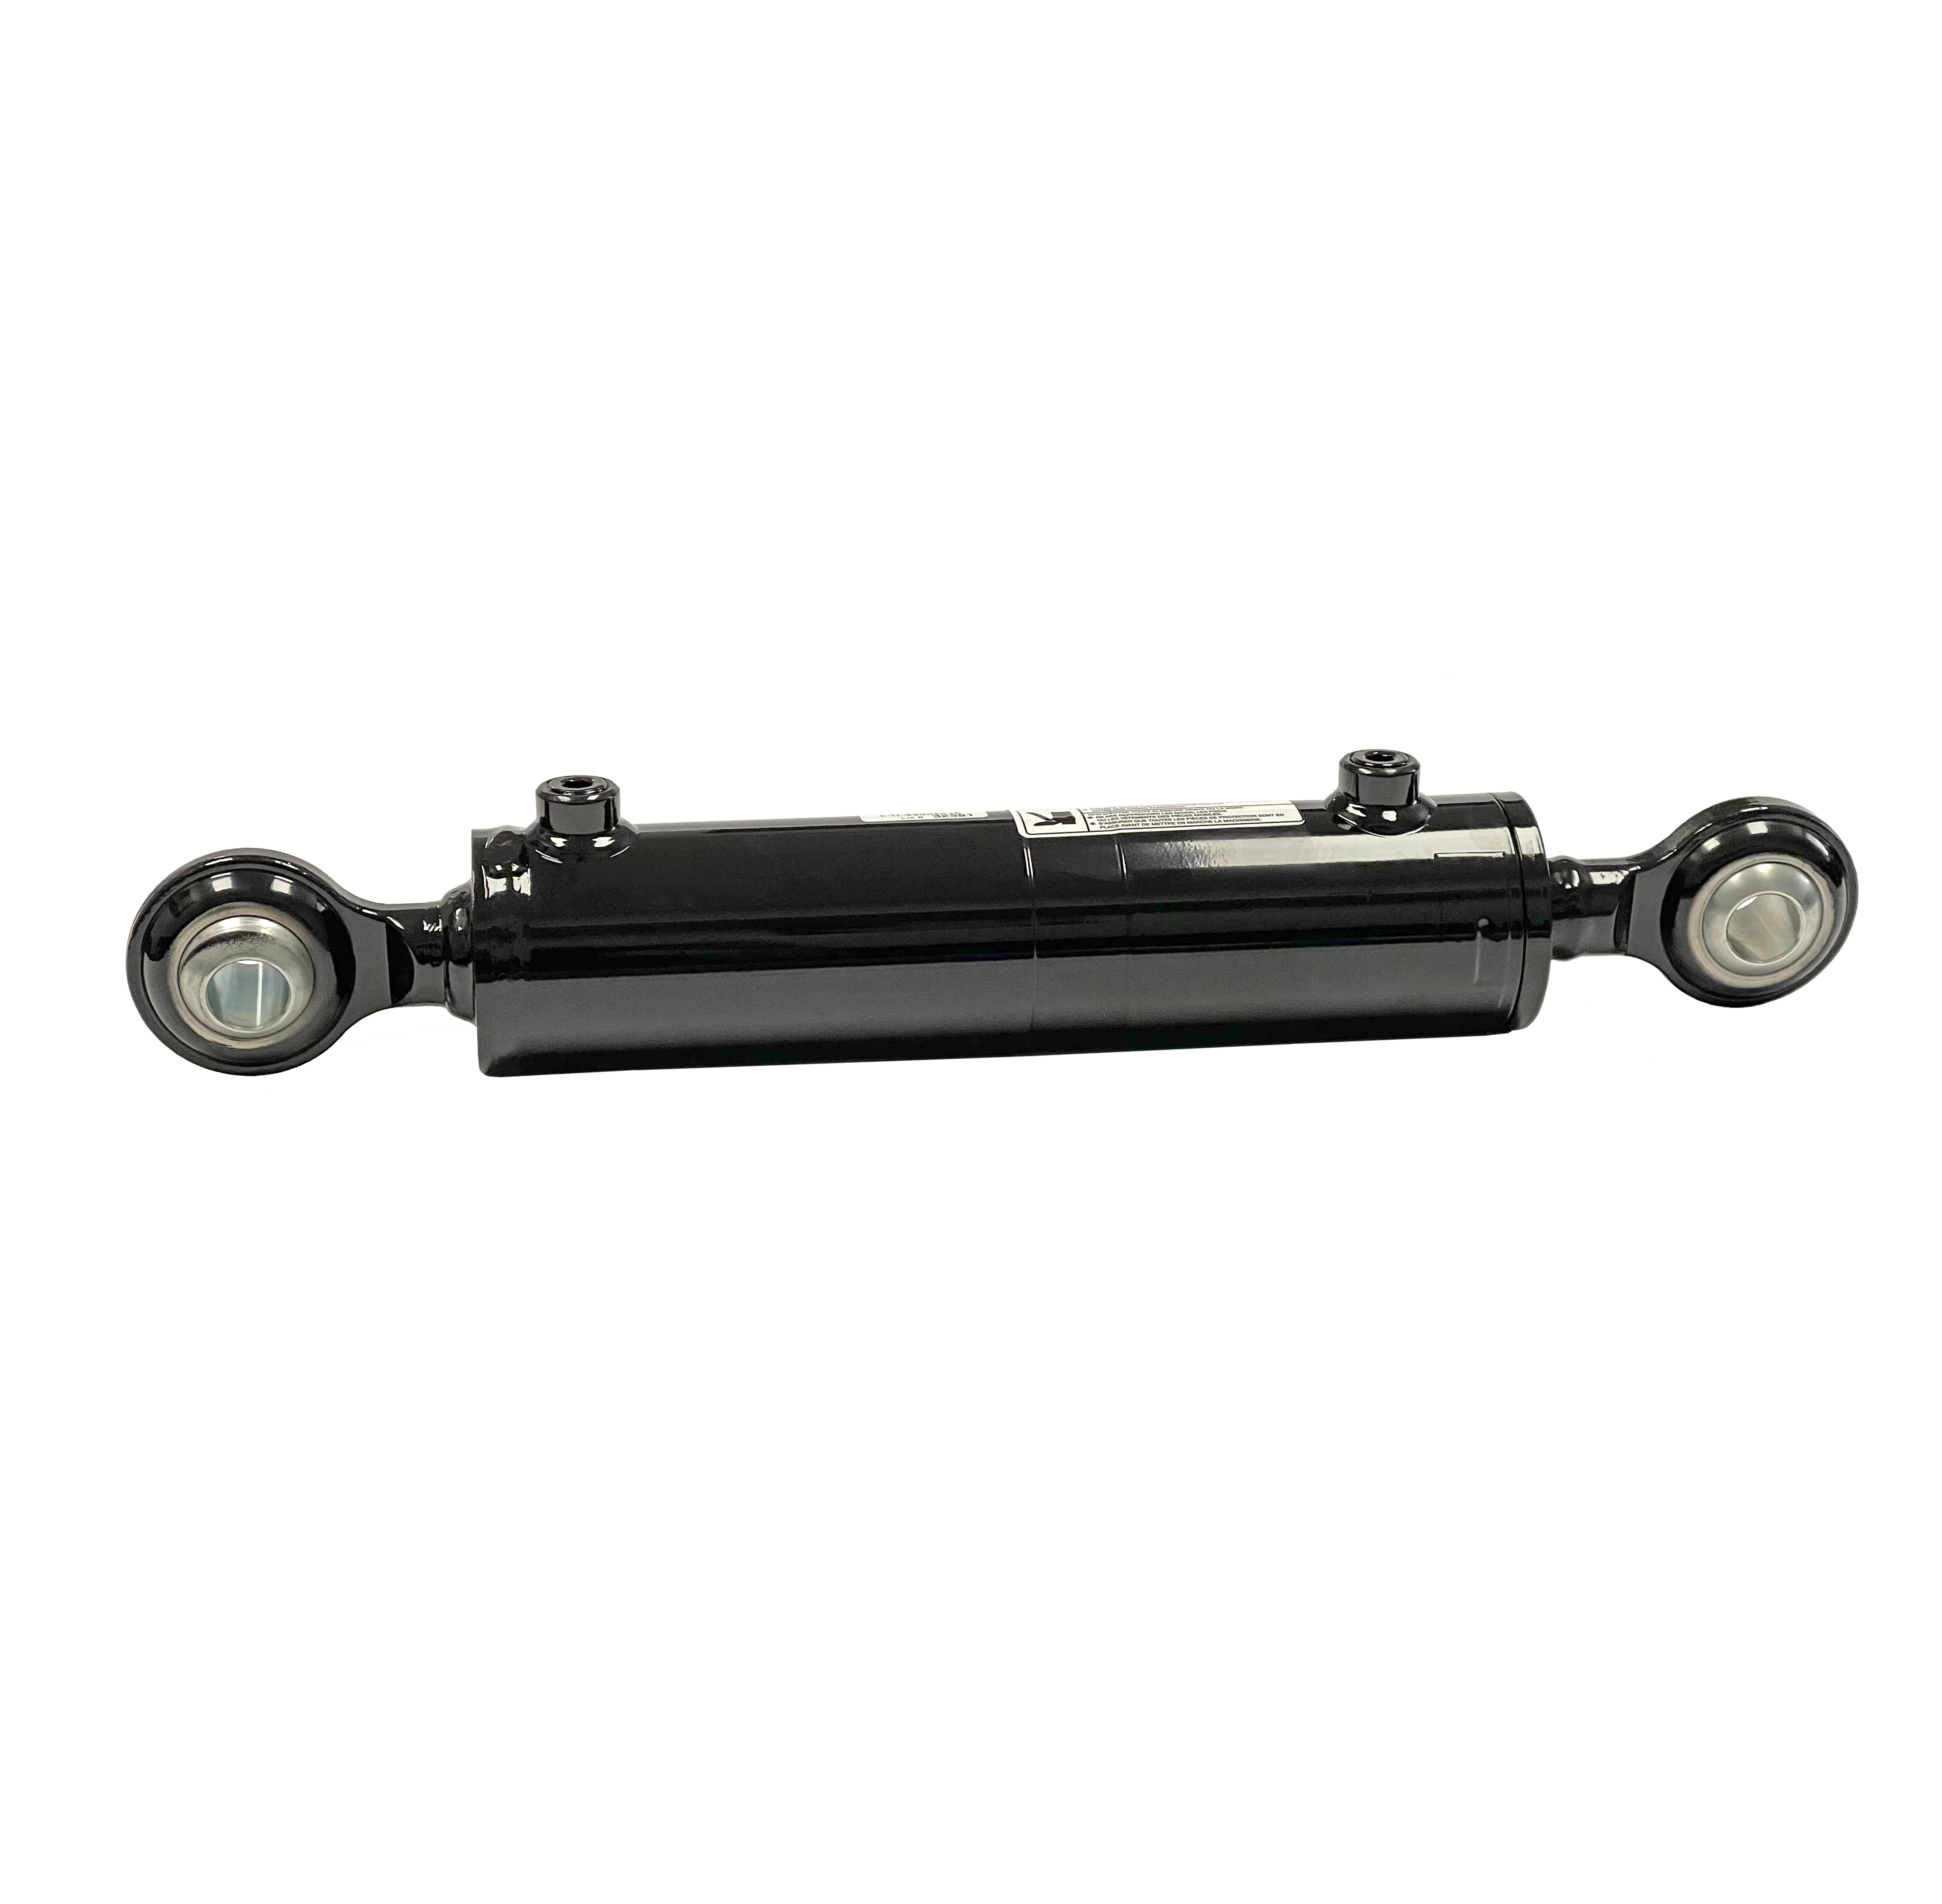 3 bore x 10 stroke toplink hydraulic cylinder, welded Top Link double acting cylinder | Prince Hydraulics